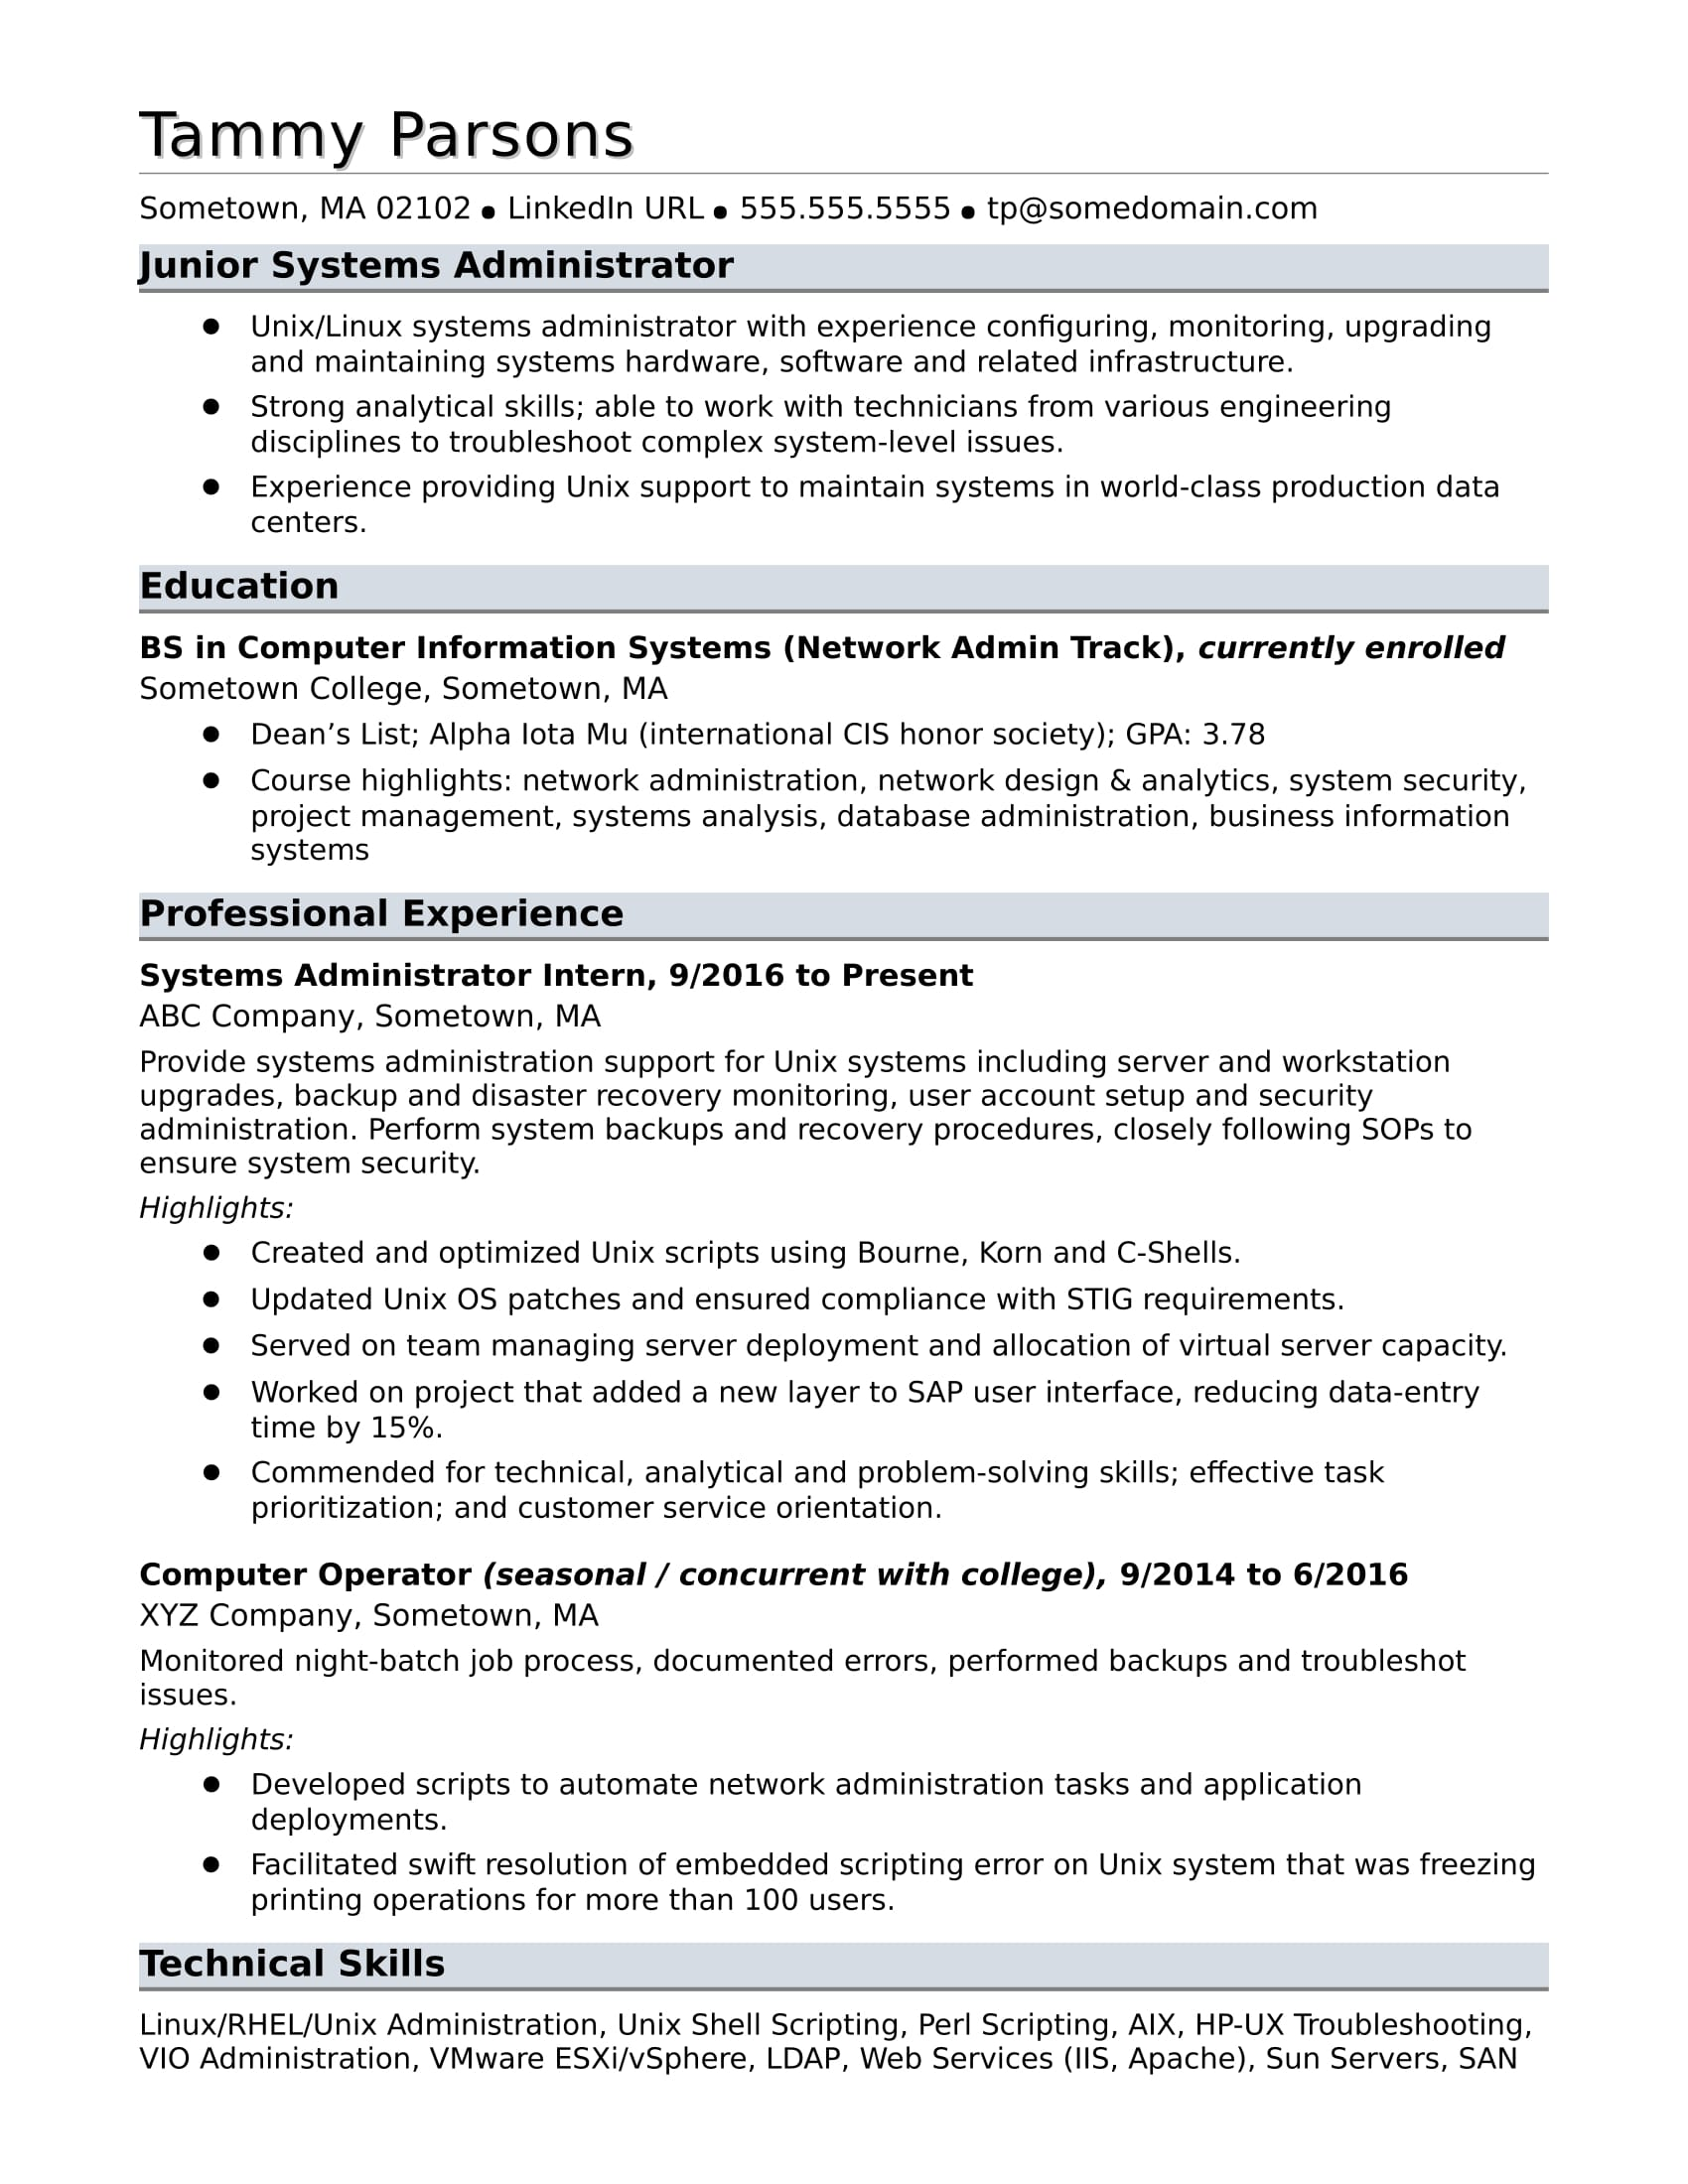 sample resume for an entry level systems administrator monster system powerful freshers Resume System Administrator Resume Sample